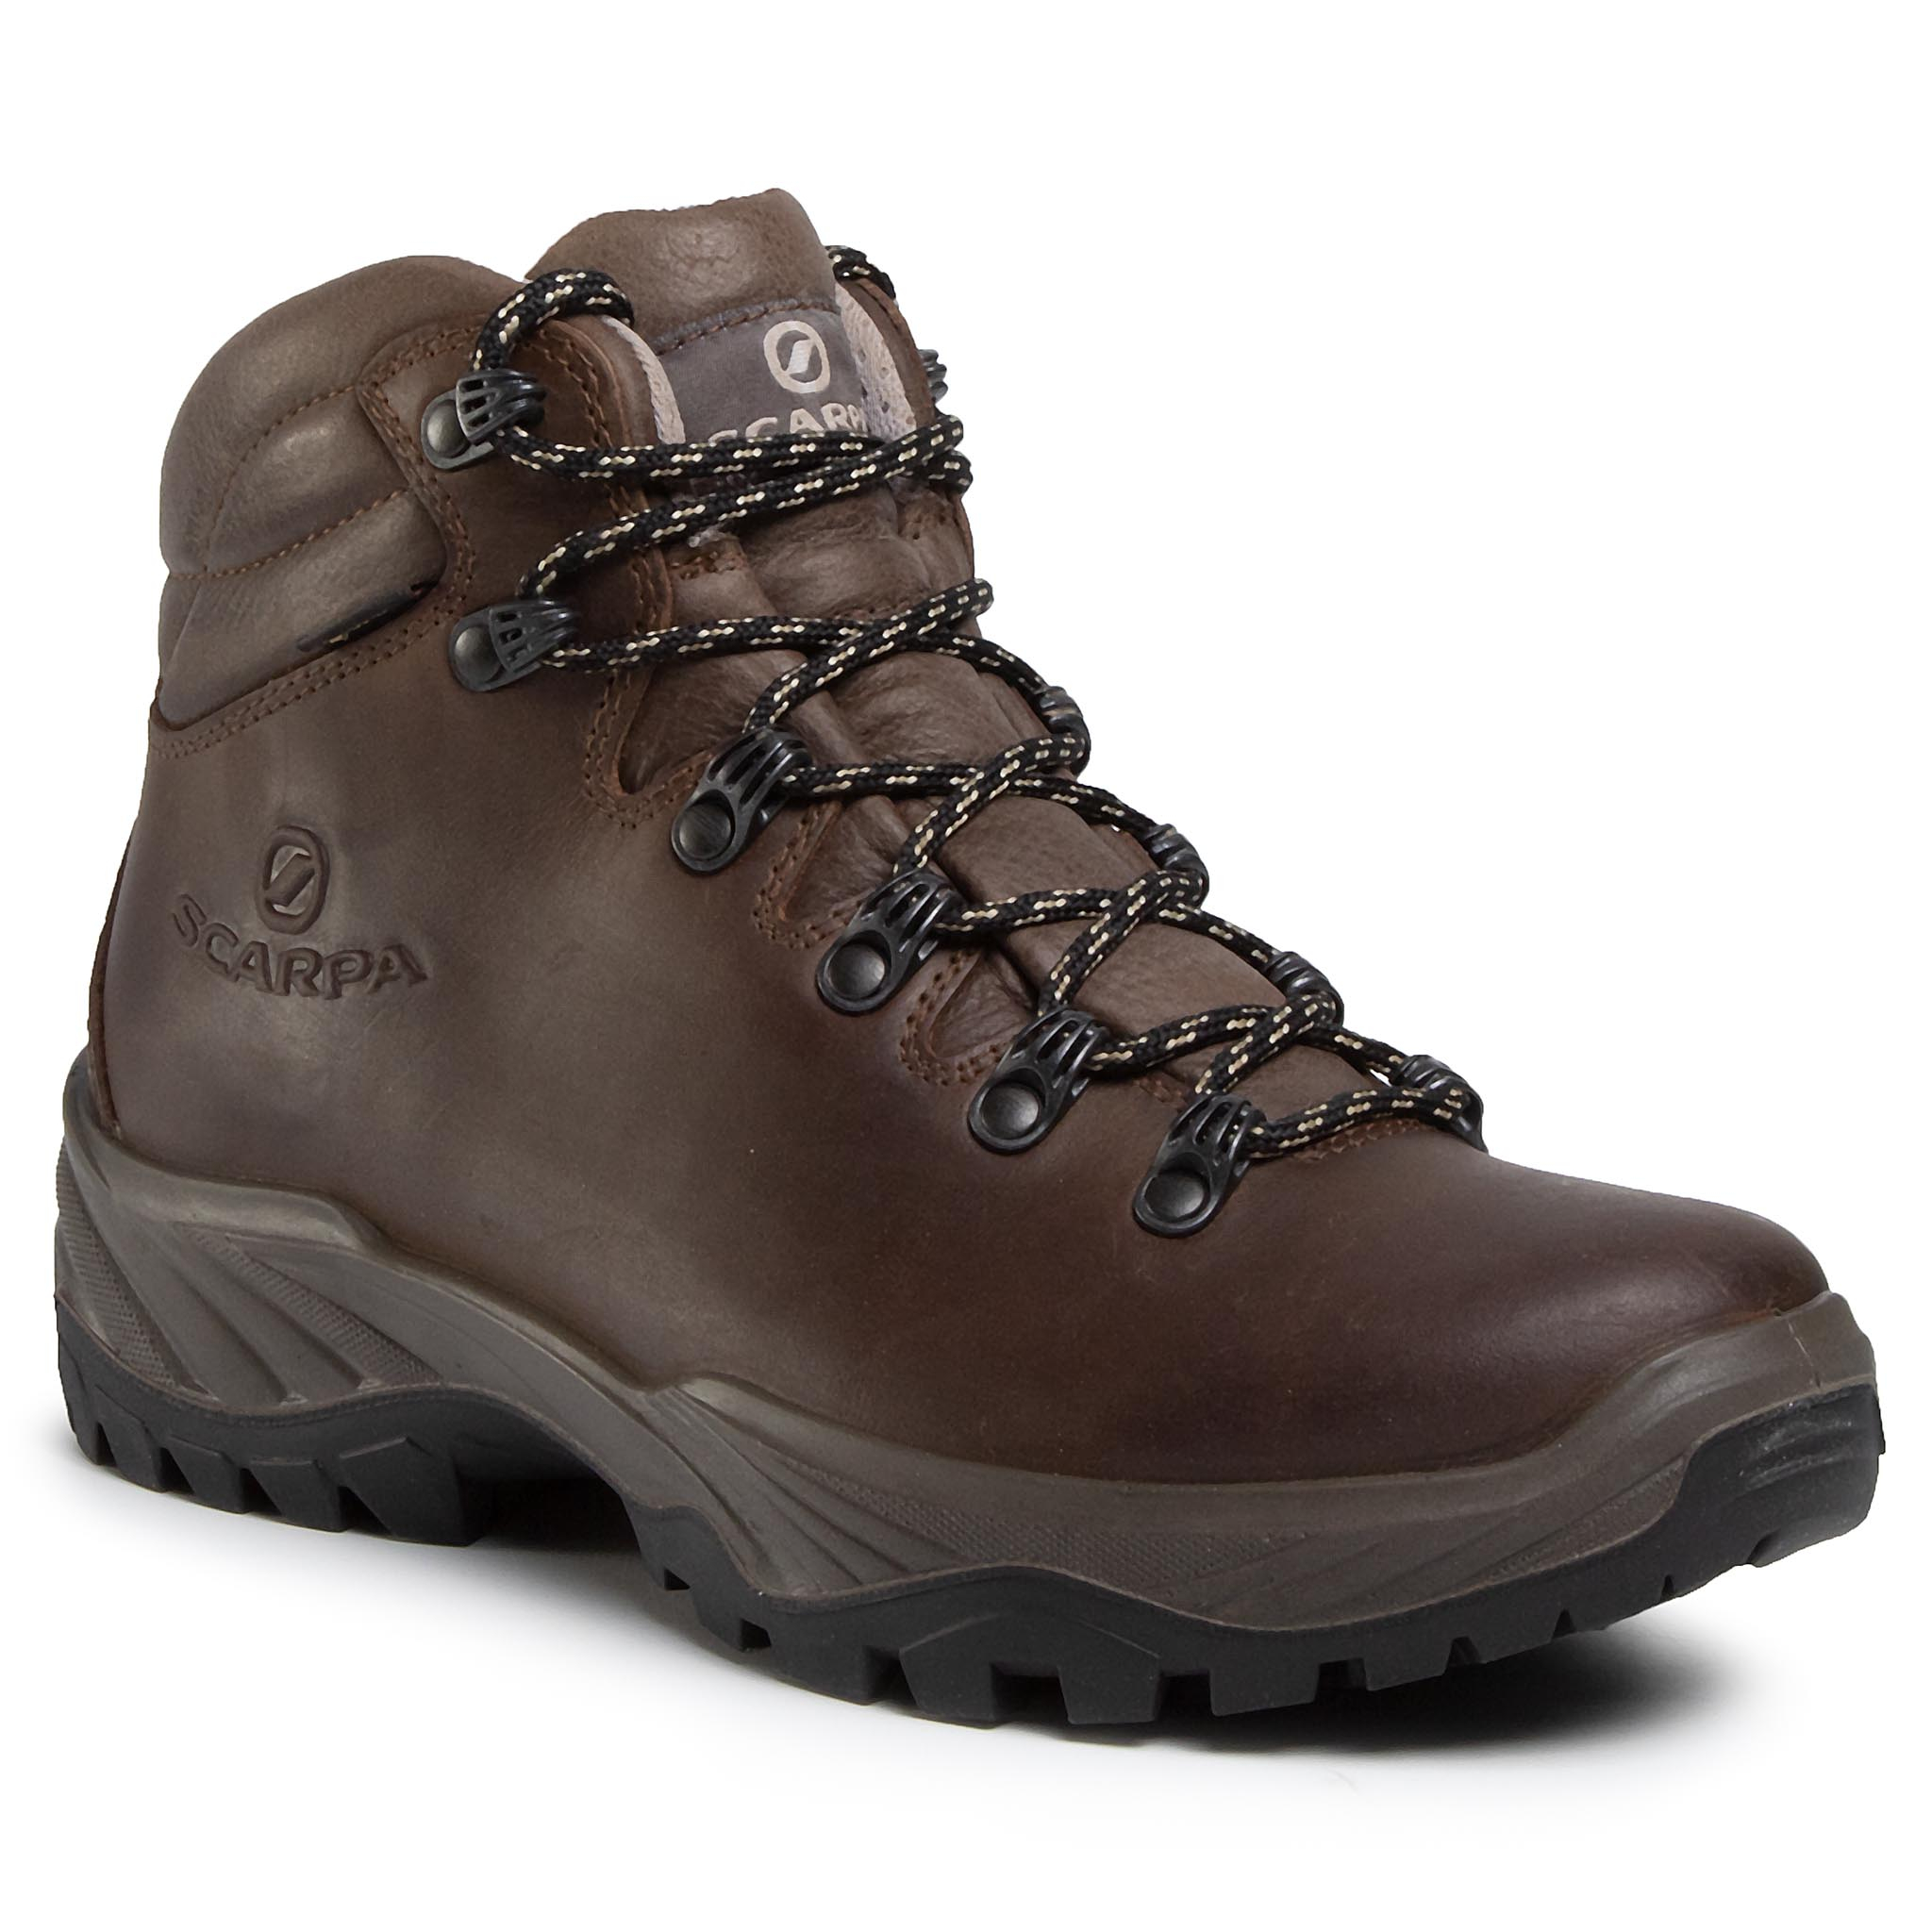 Trekkings Scarpa - Terra Gtx Wmn Gore-Tex 30020-202 Brown imagine epantofi.ro 2021